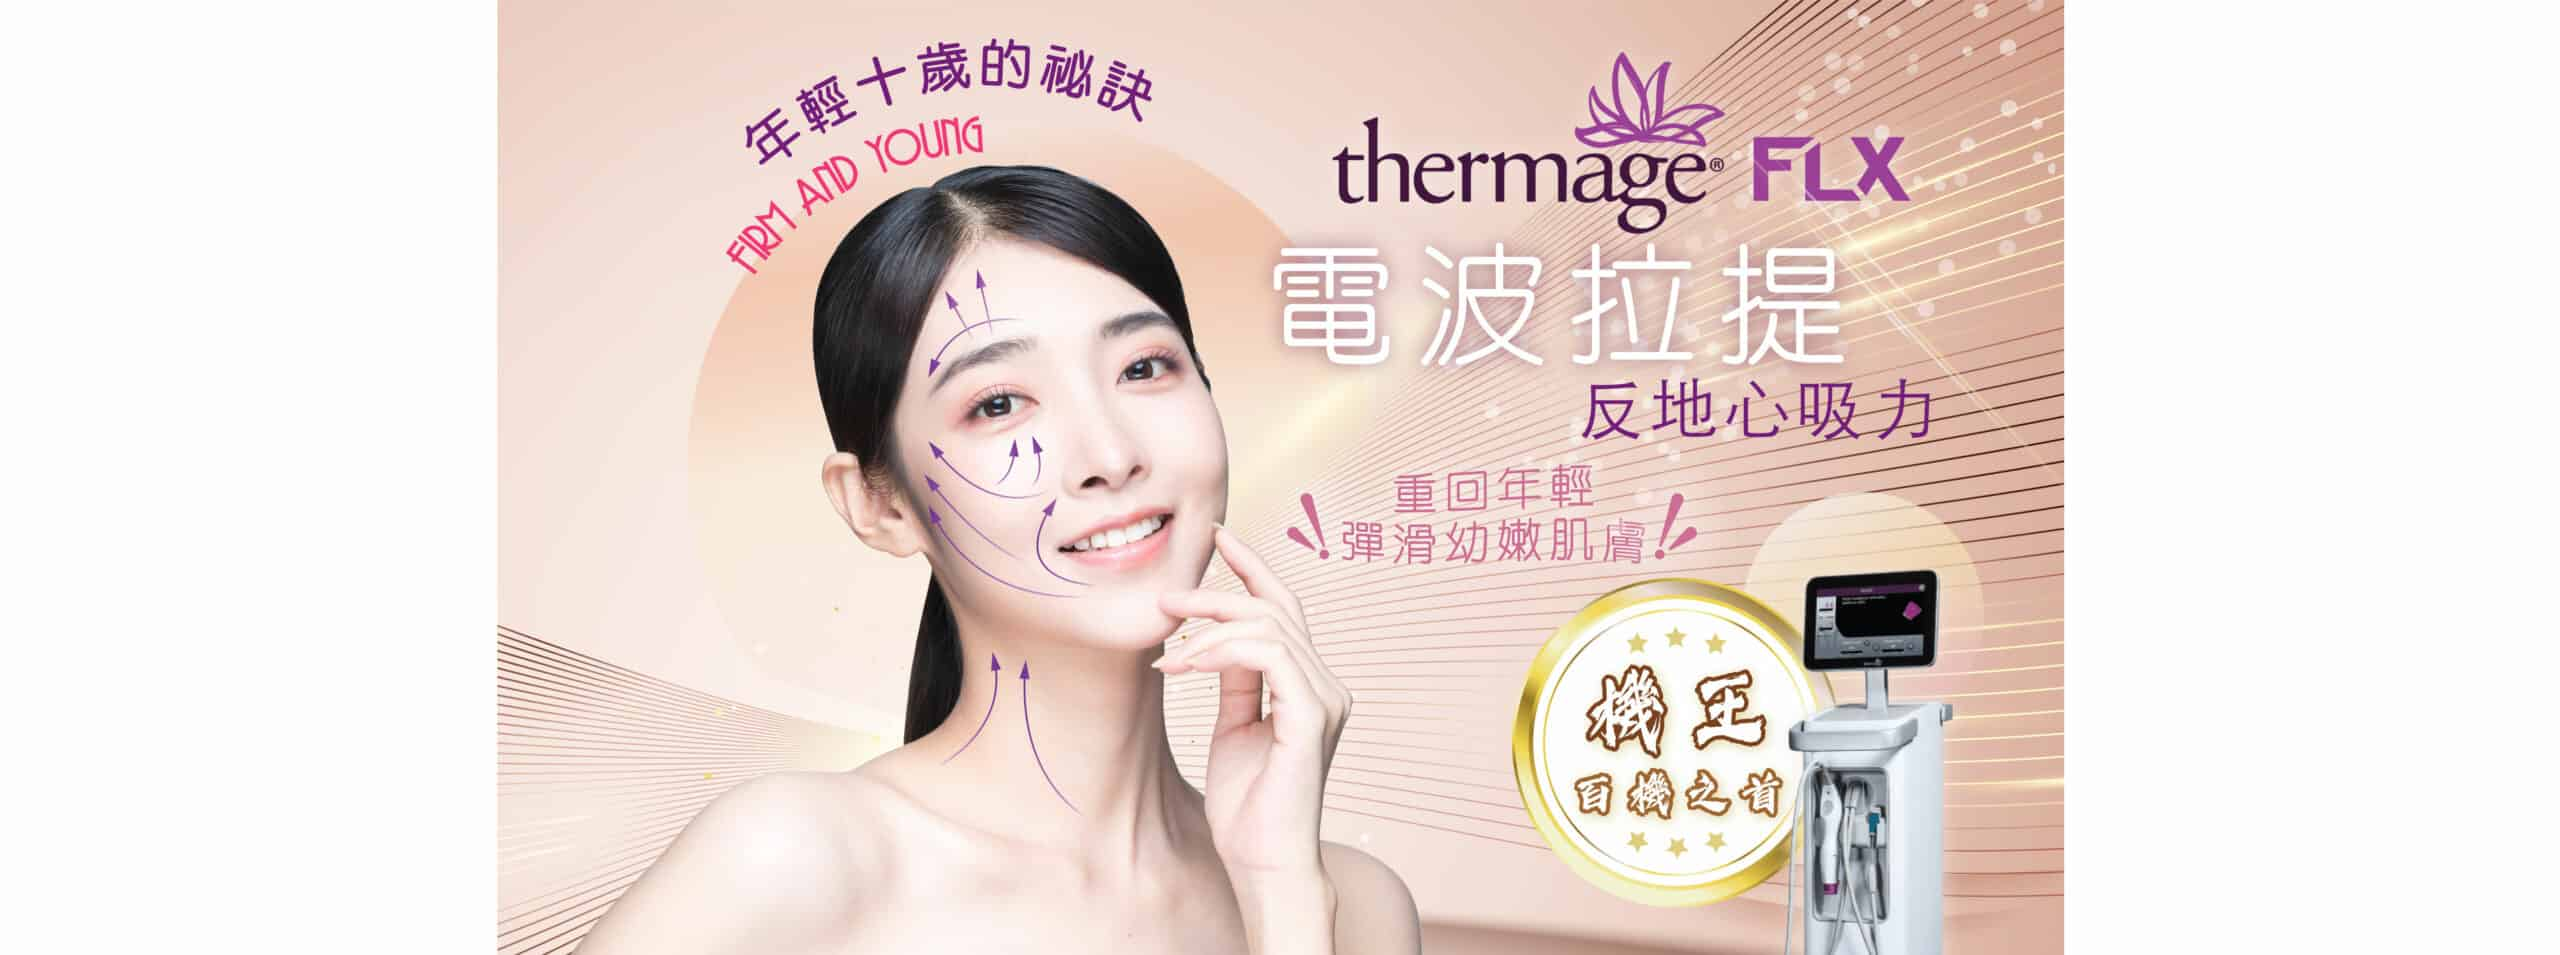 Thermage 電波拉提 thermage web 1 scaled